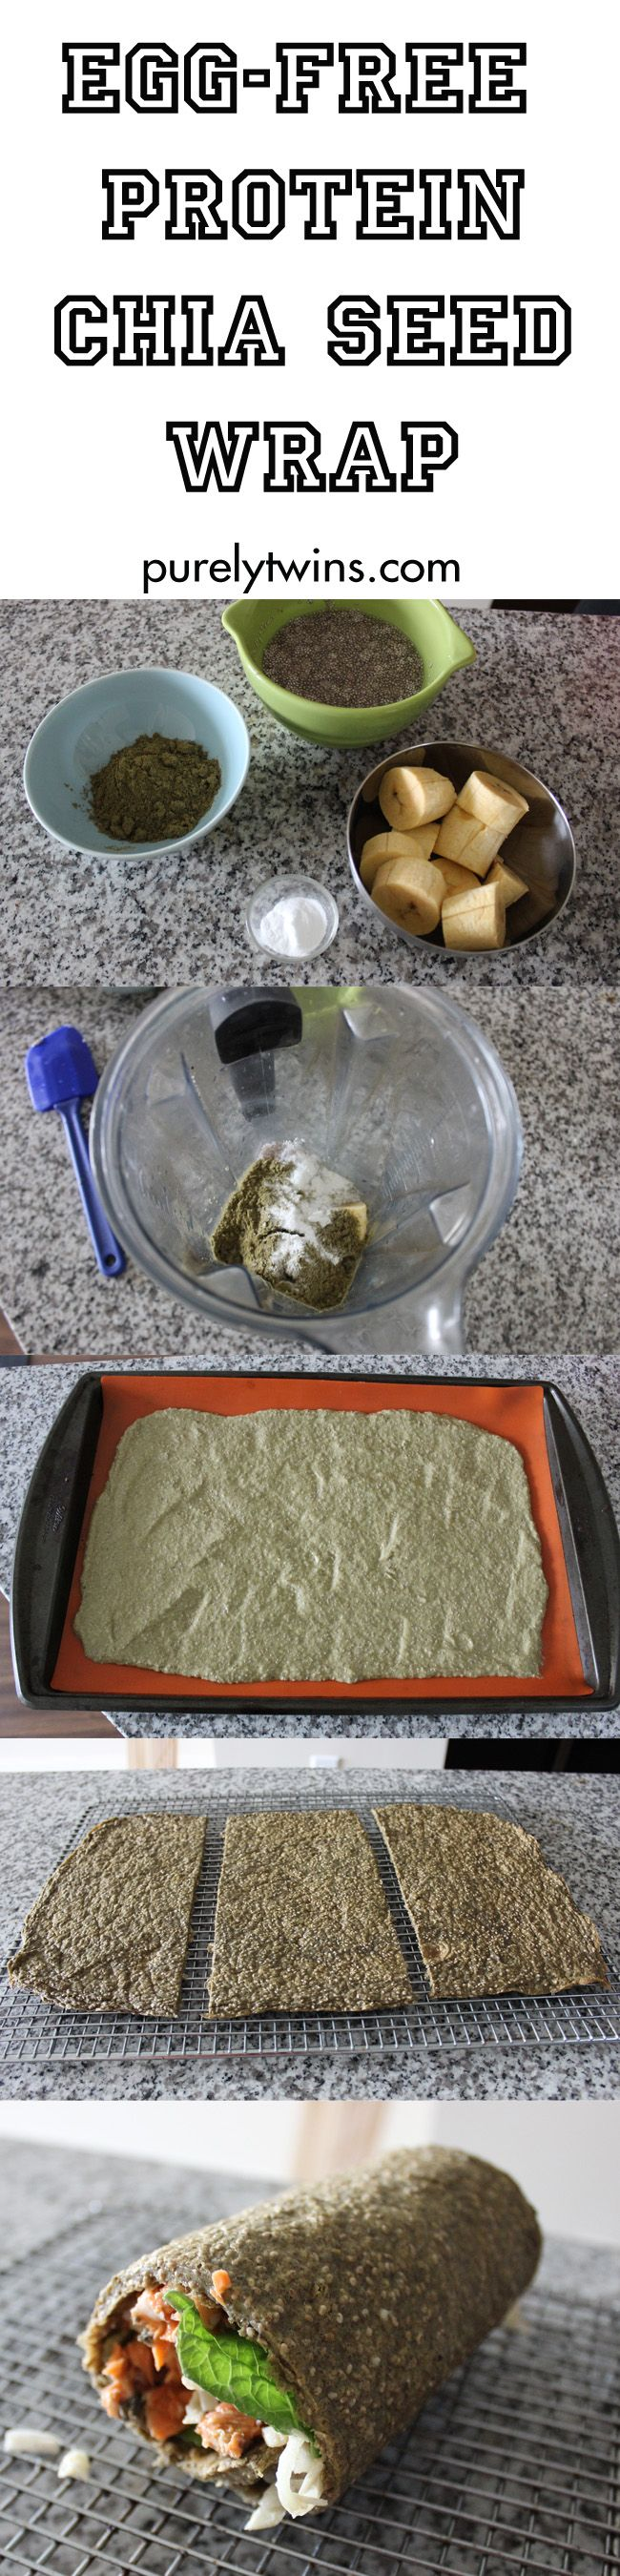 how to make egg-free wrap using chia seeds and hemp protein powder for a superfood wrap    purelytwins